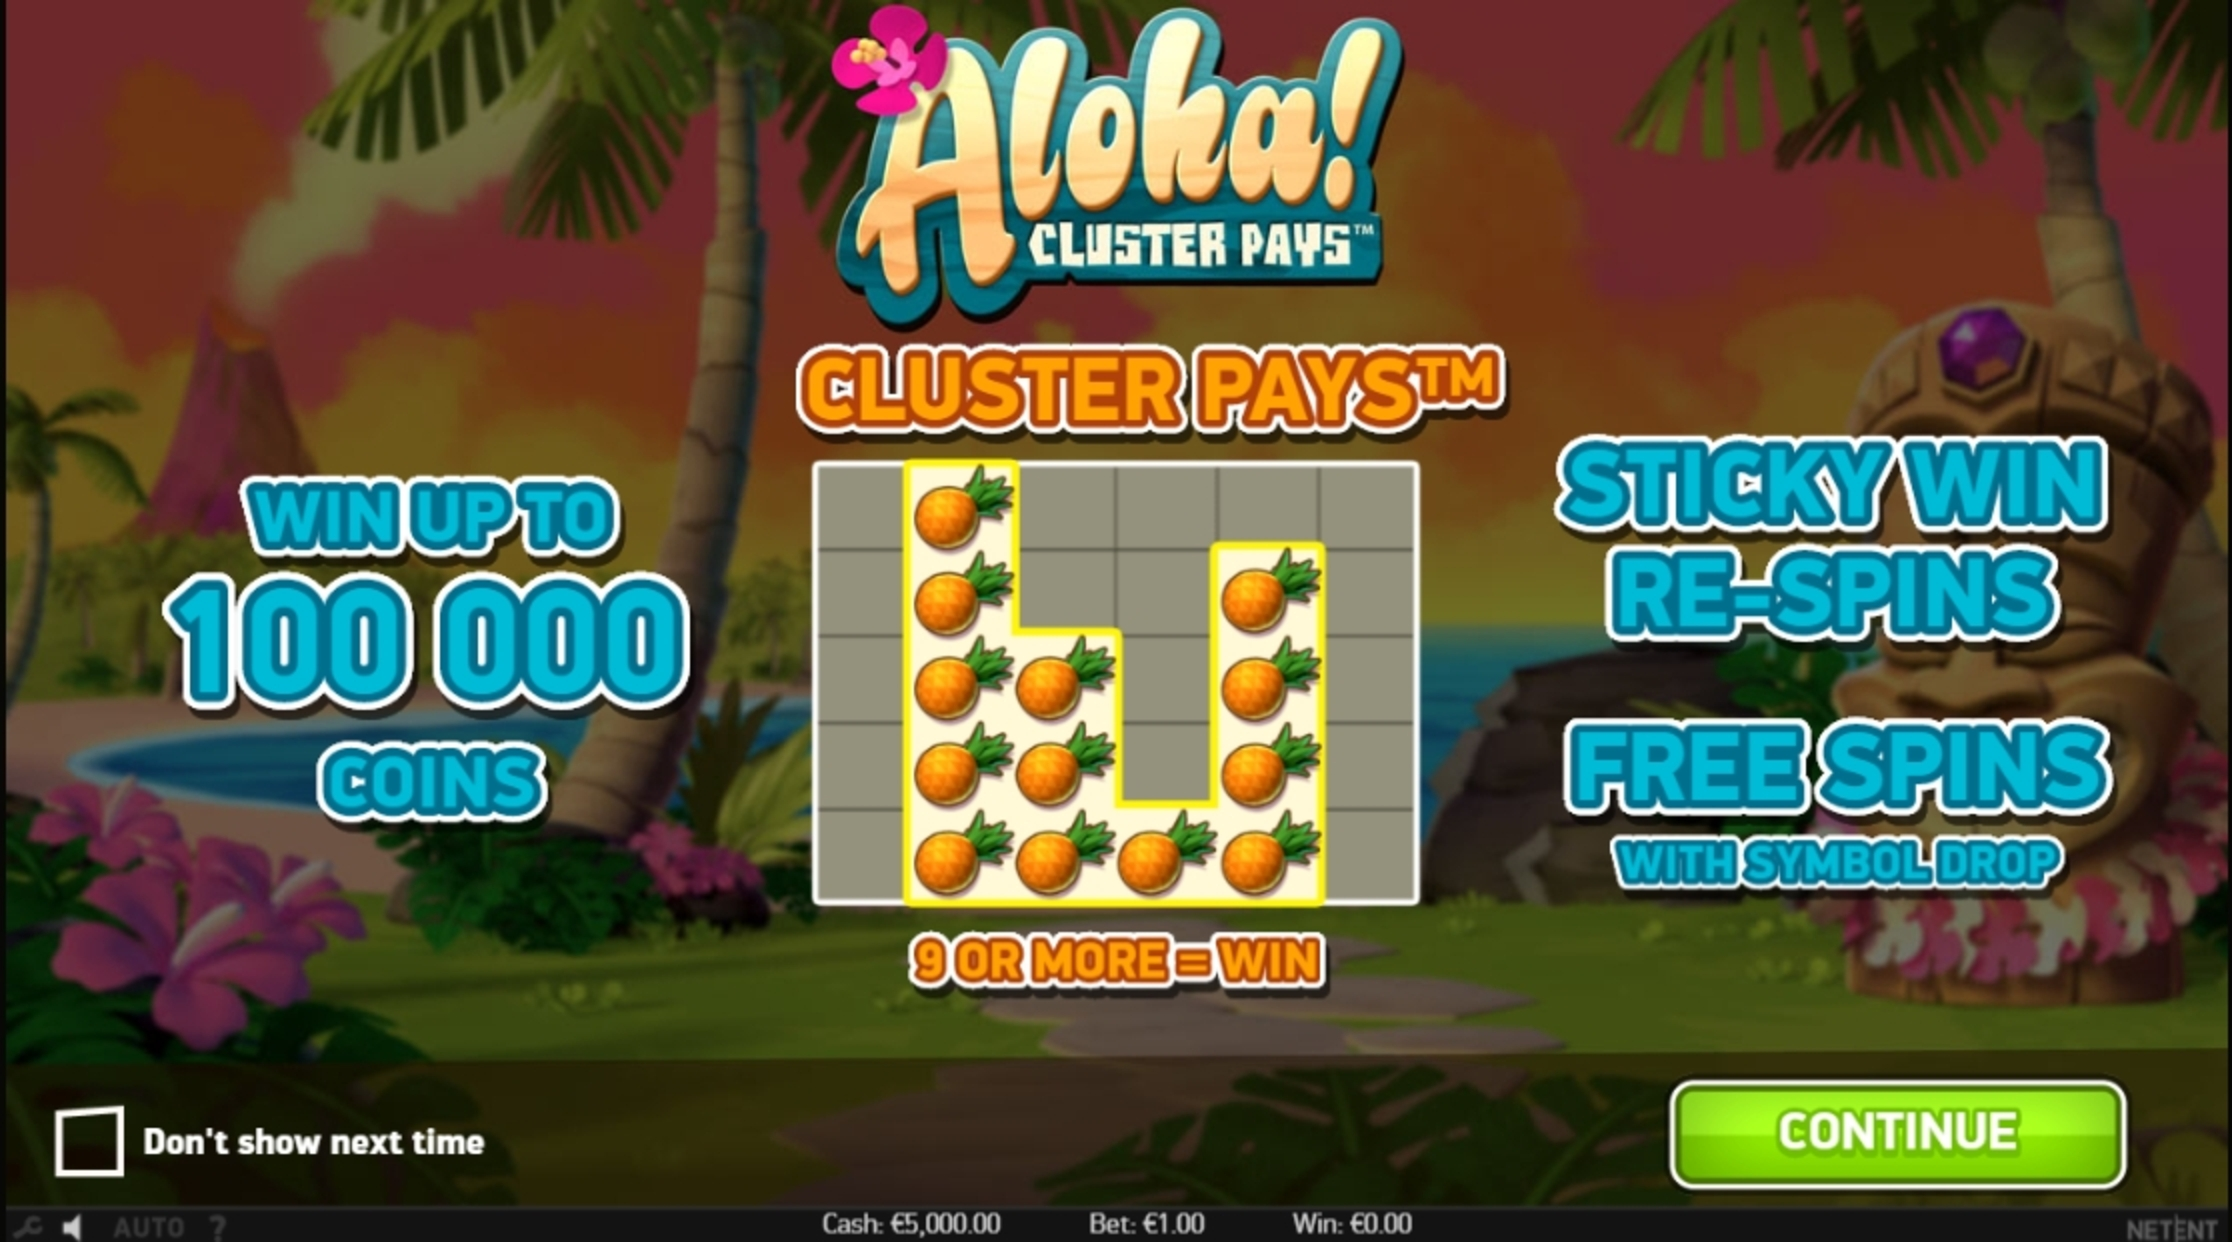 Play Aloha! Cluster Pays Free Casino Slot Game by NetEnt